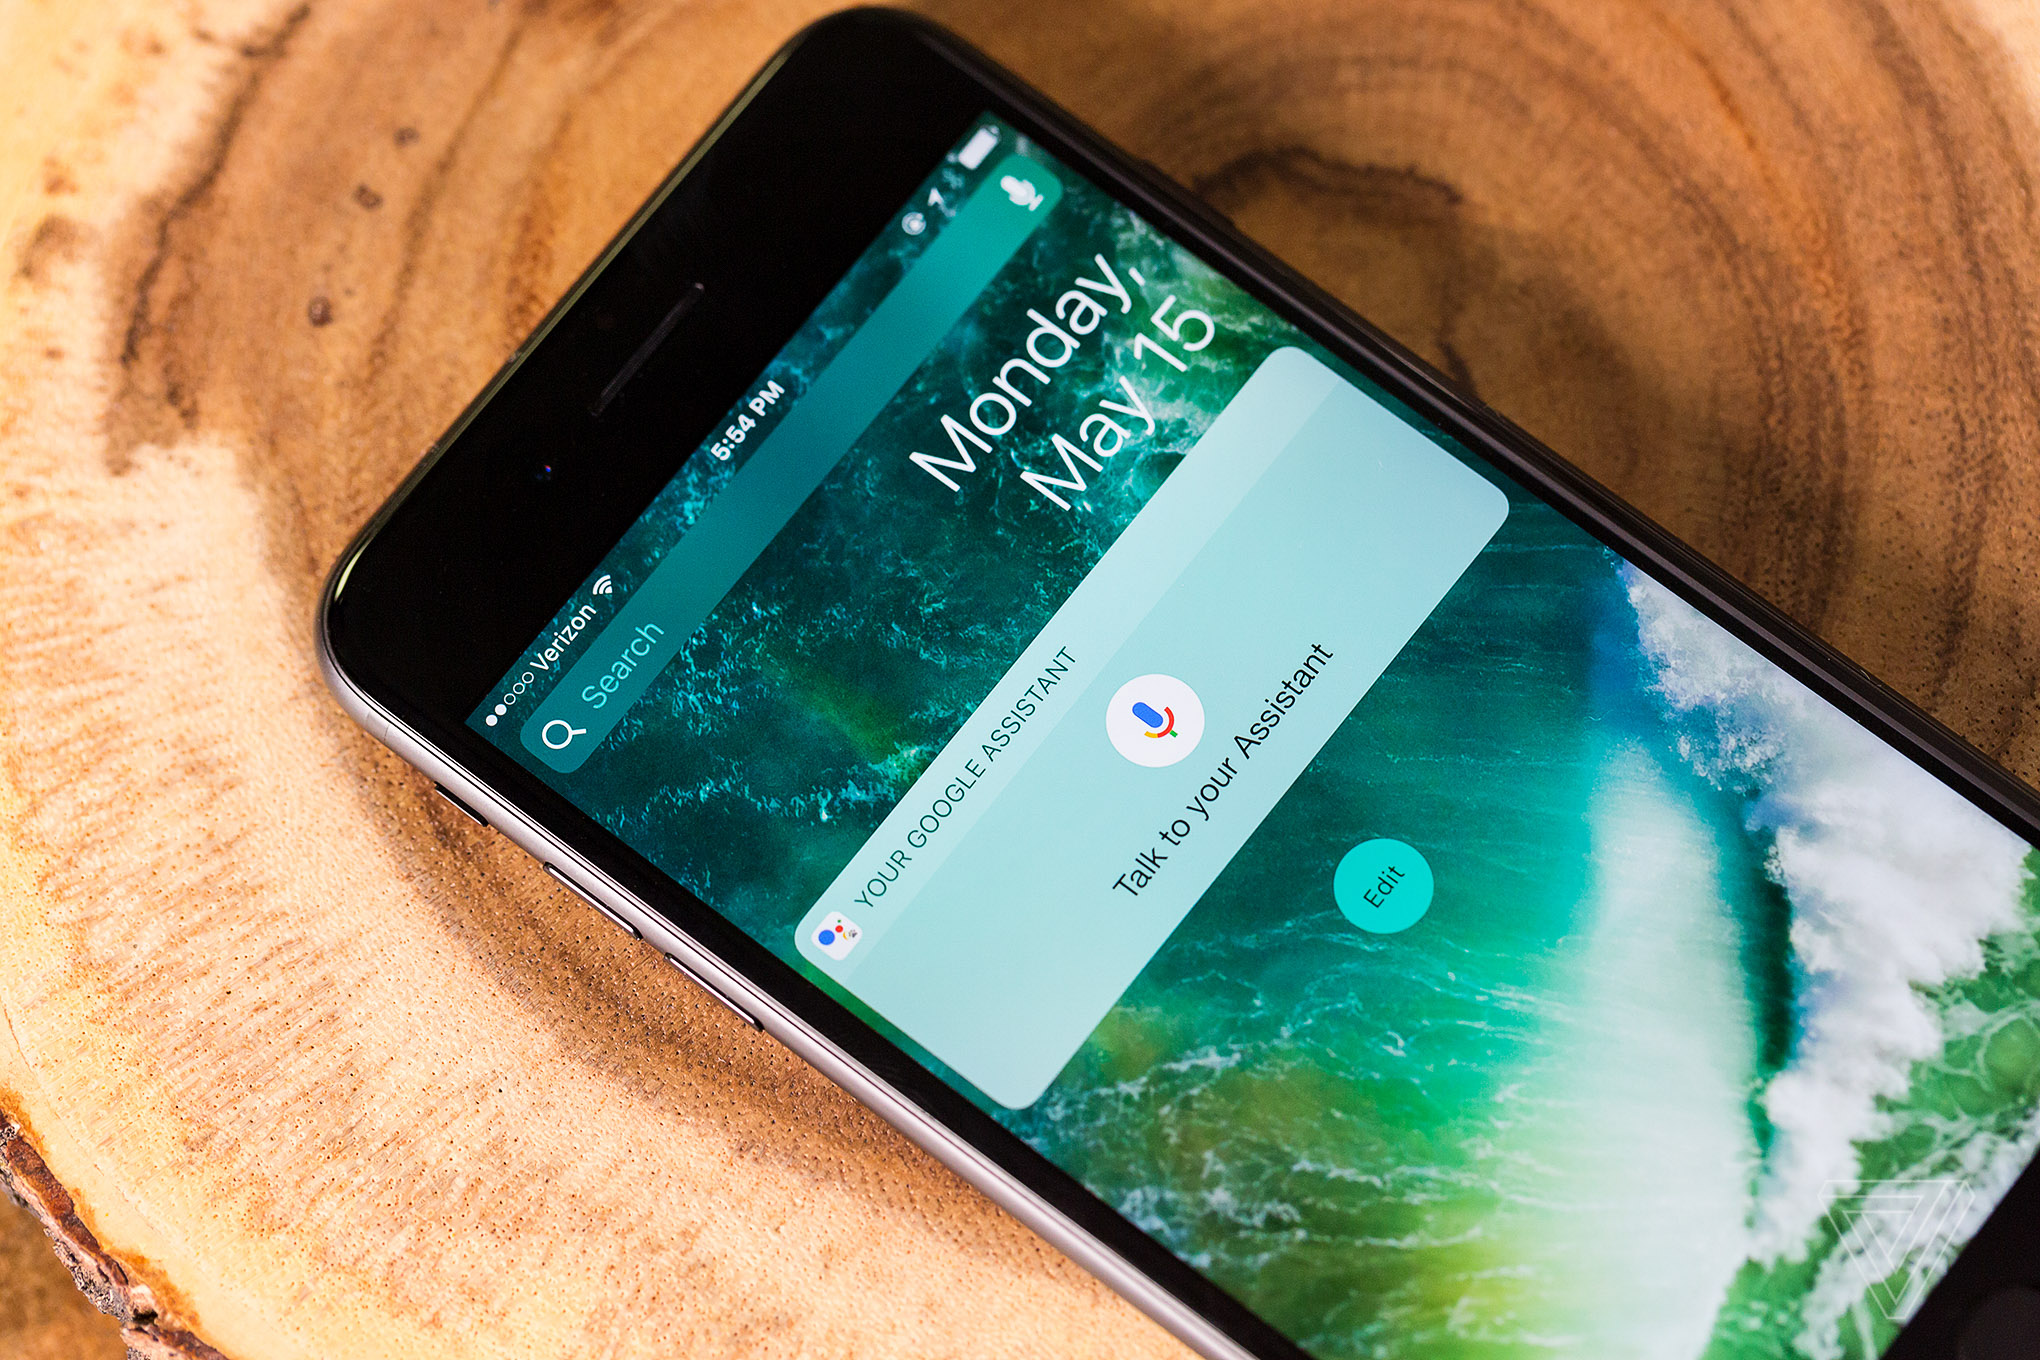 Hey Siri, Google Assistant is on the iPhone now - The Verge